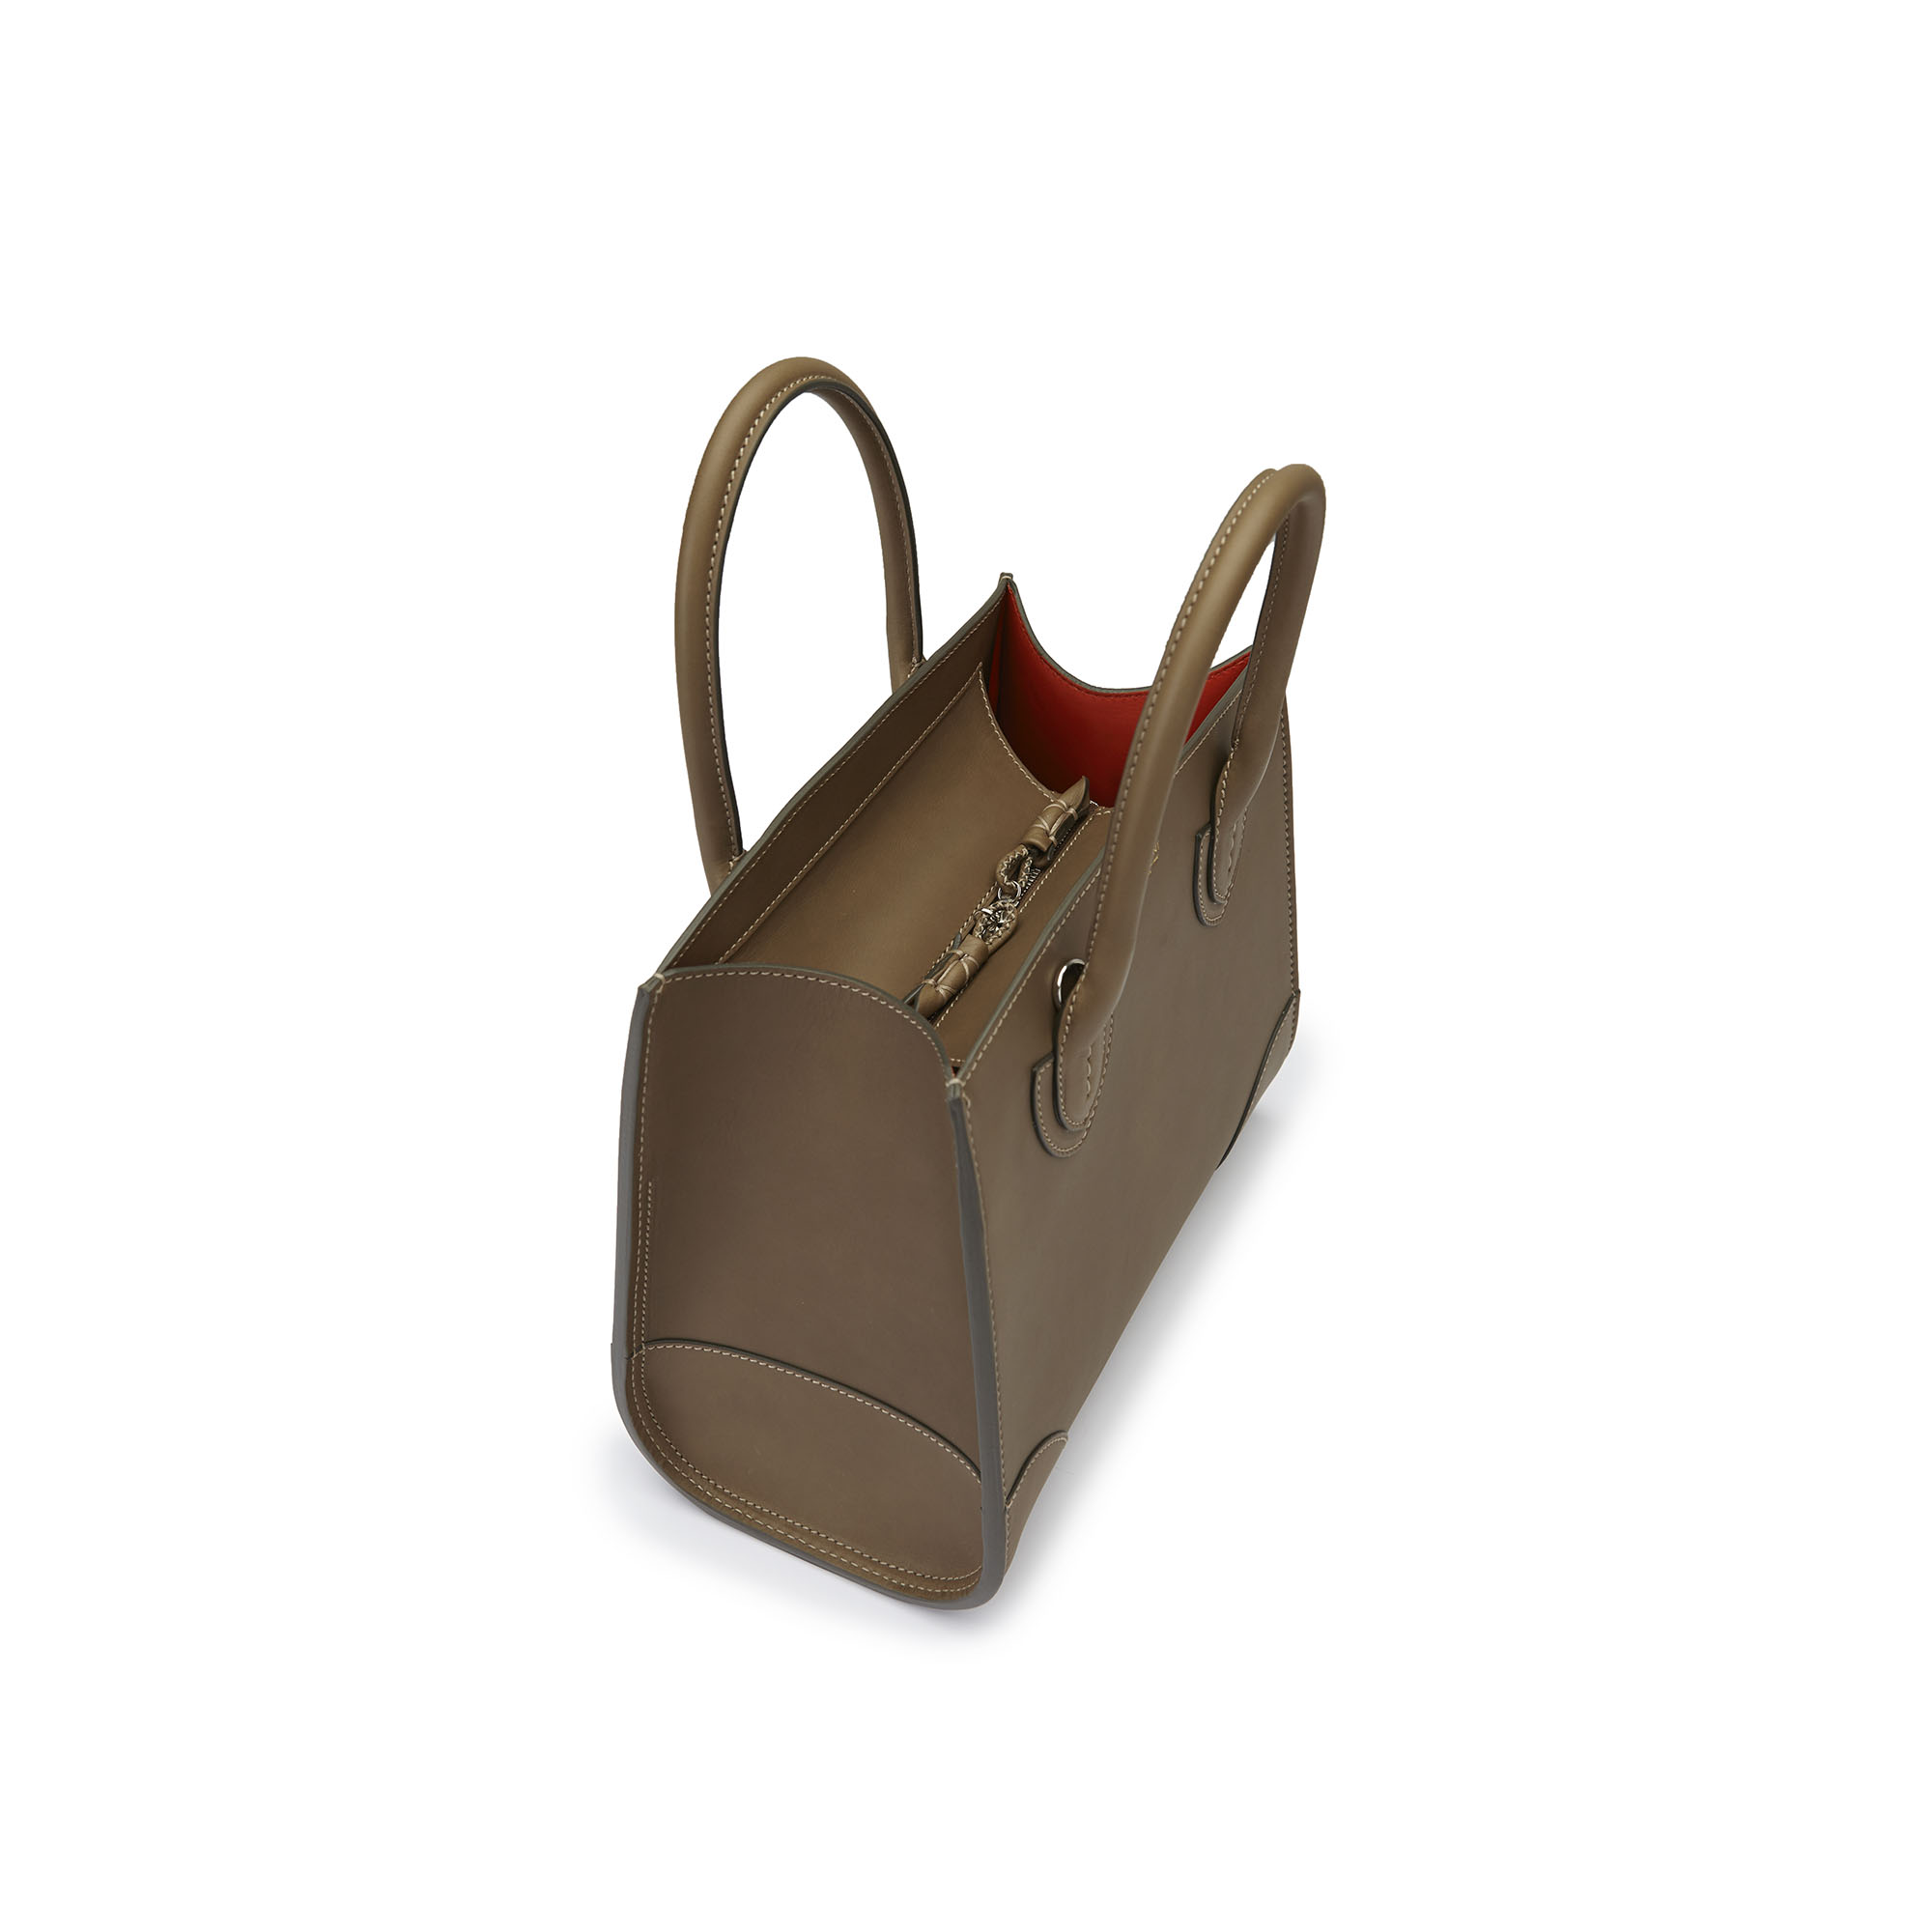 The military green french calf Darcy bag by Bertoni 1949 04